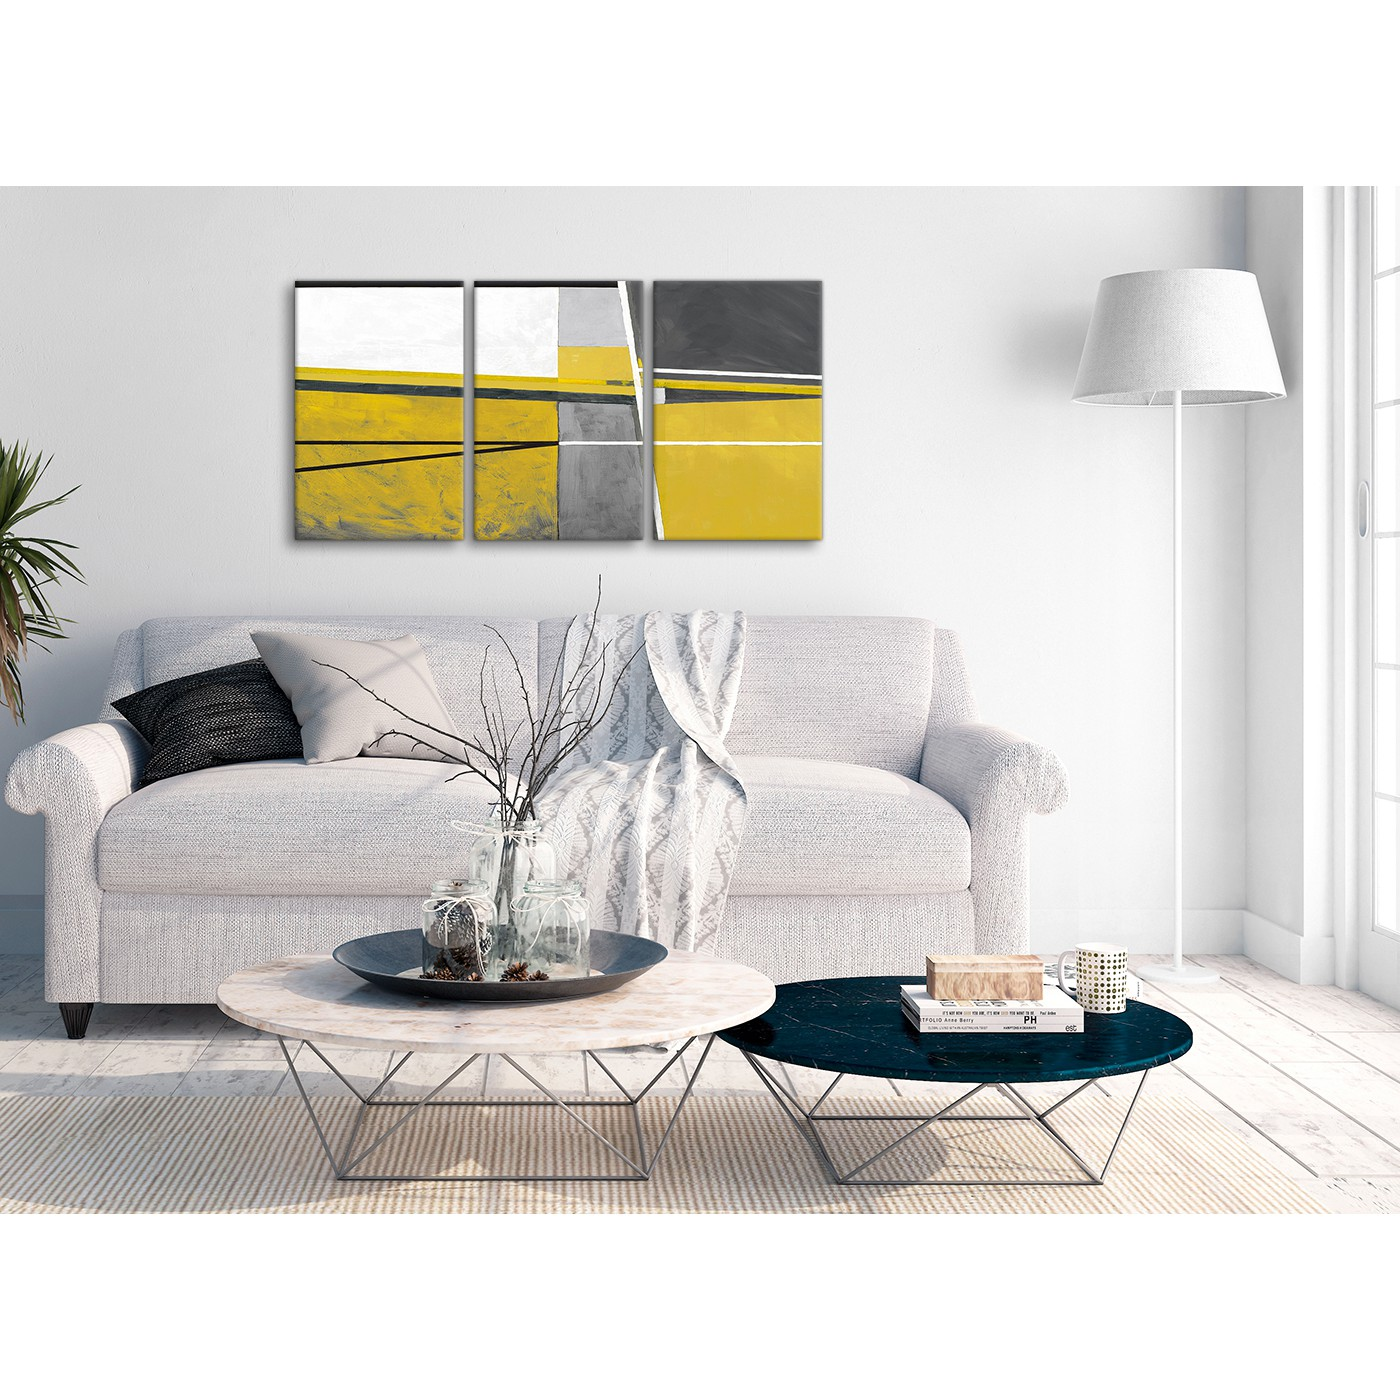 3 Panel Mustard Yellow Grey Painting Hallway Canvas Pictures ...